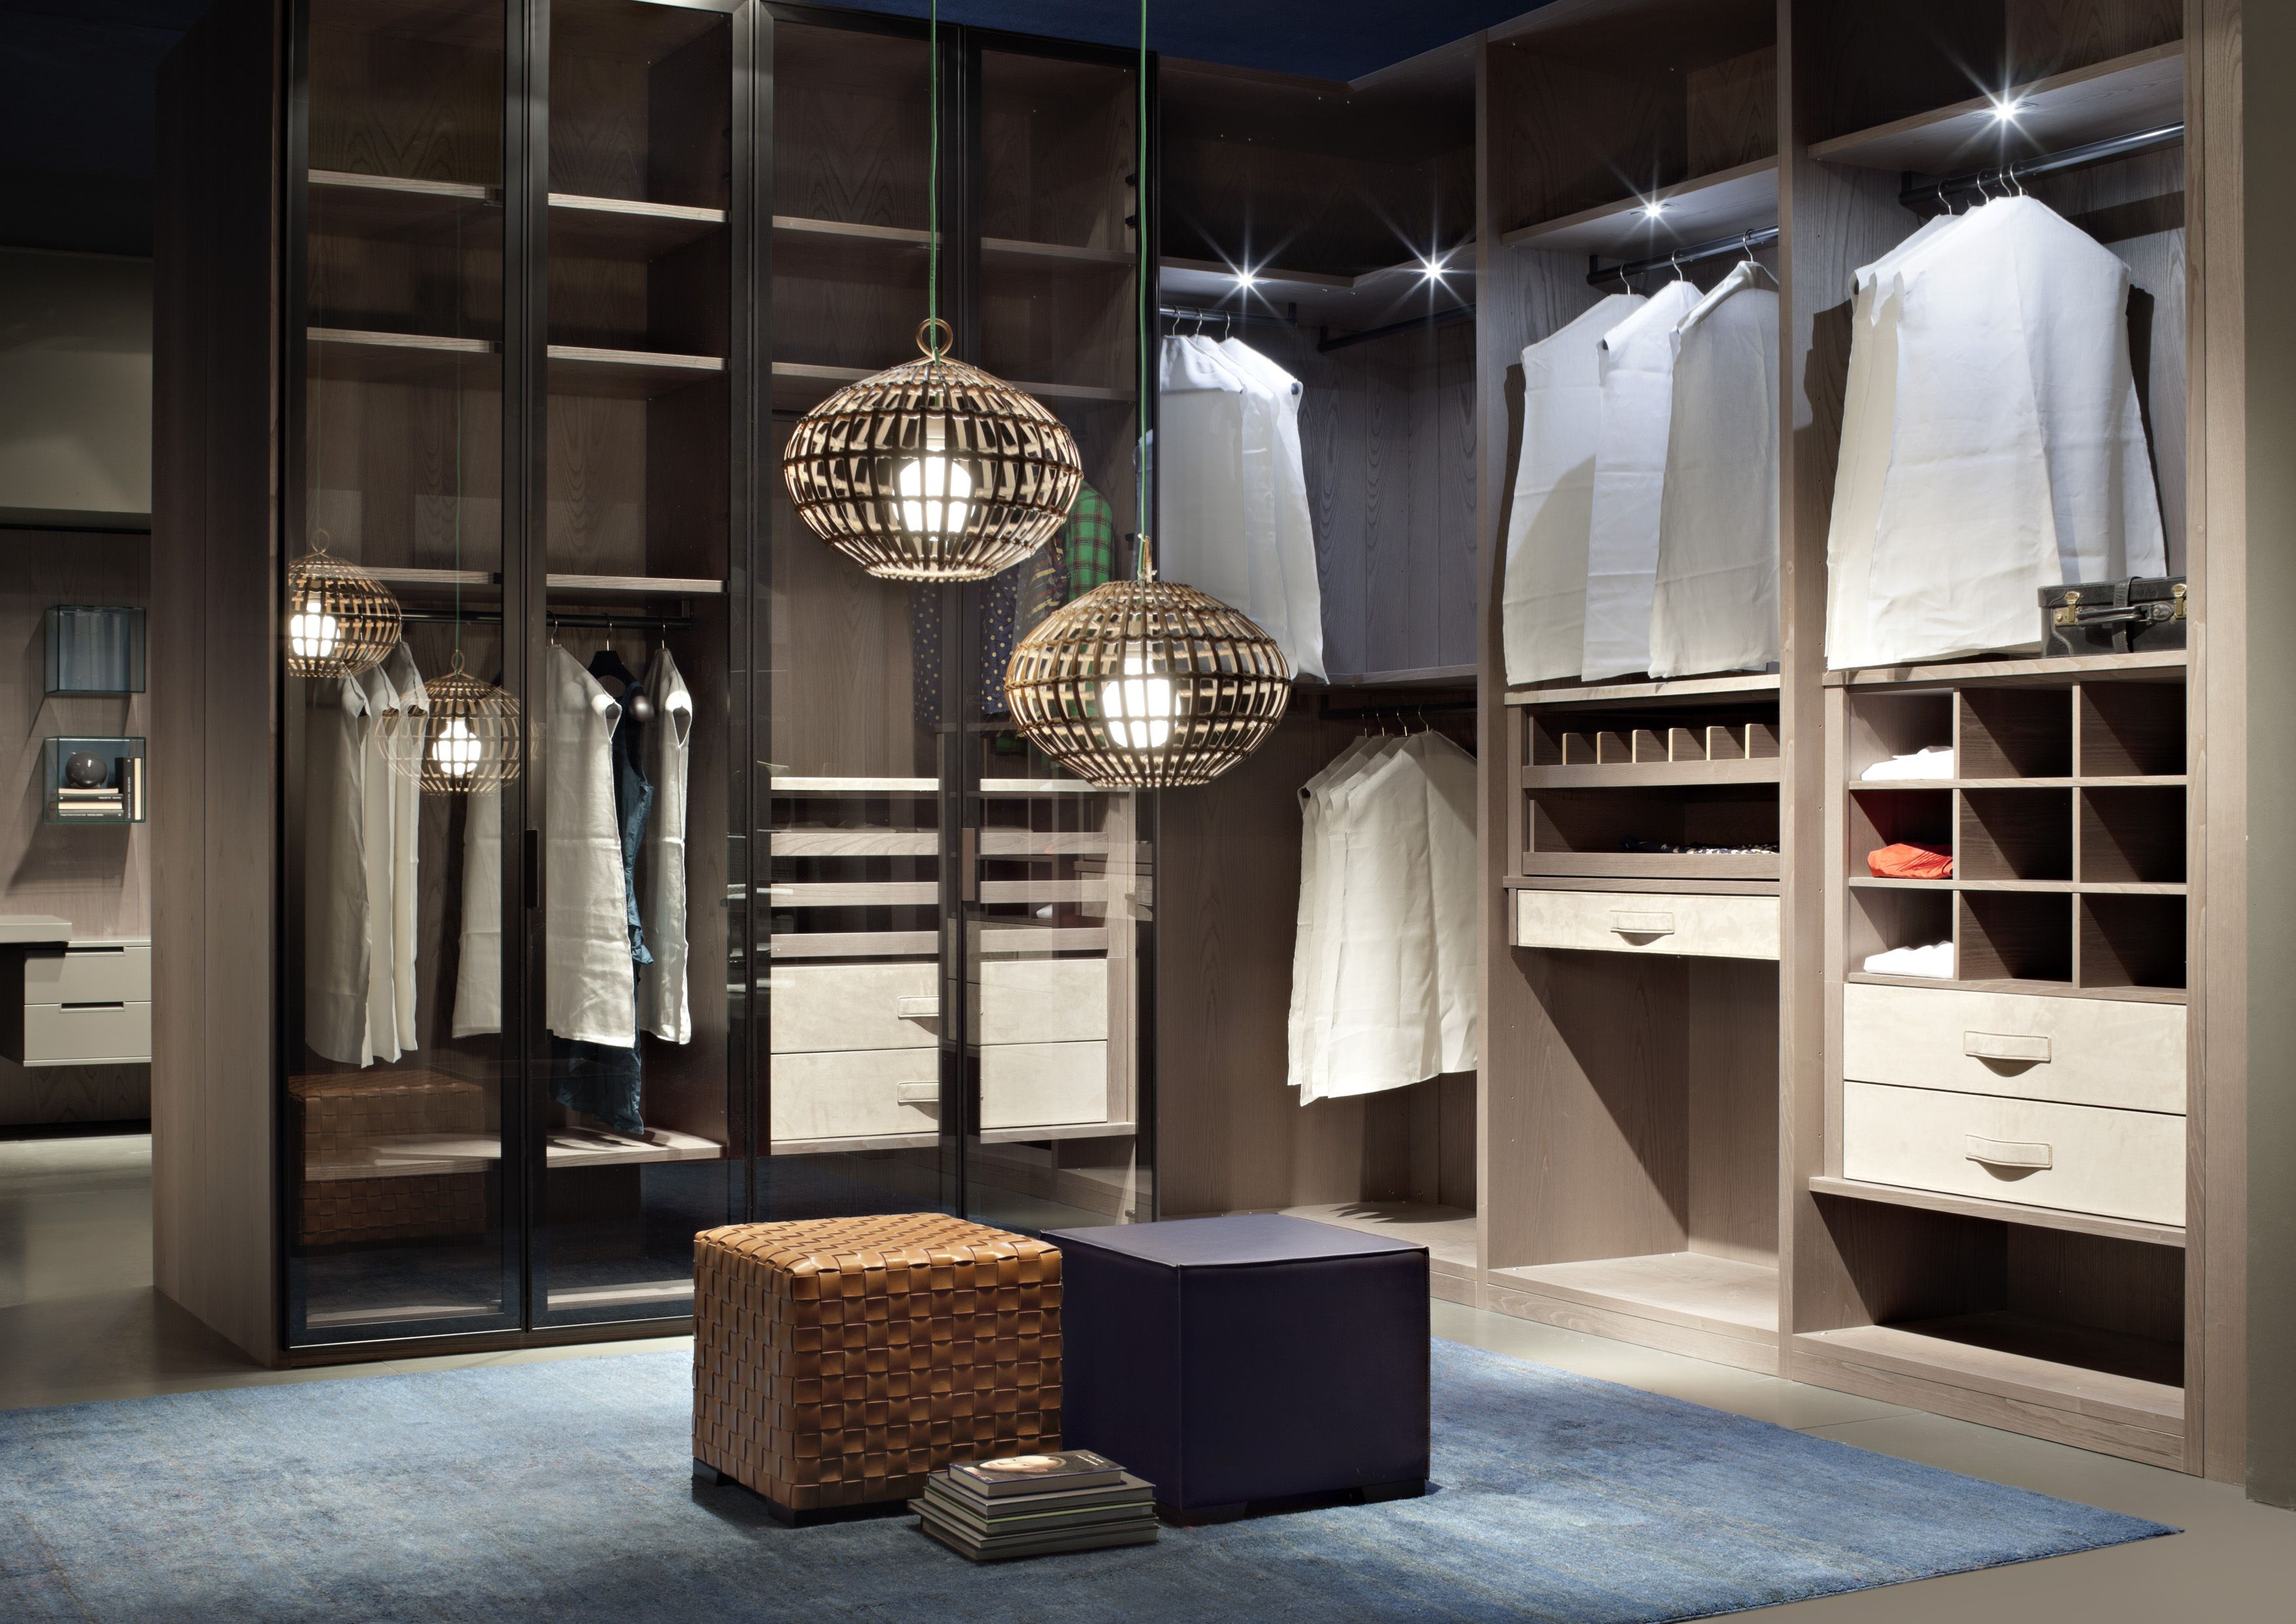 Cabina Armadio Walk In Closets : Atlante walk in closet in stained ash with nabuk leather